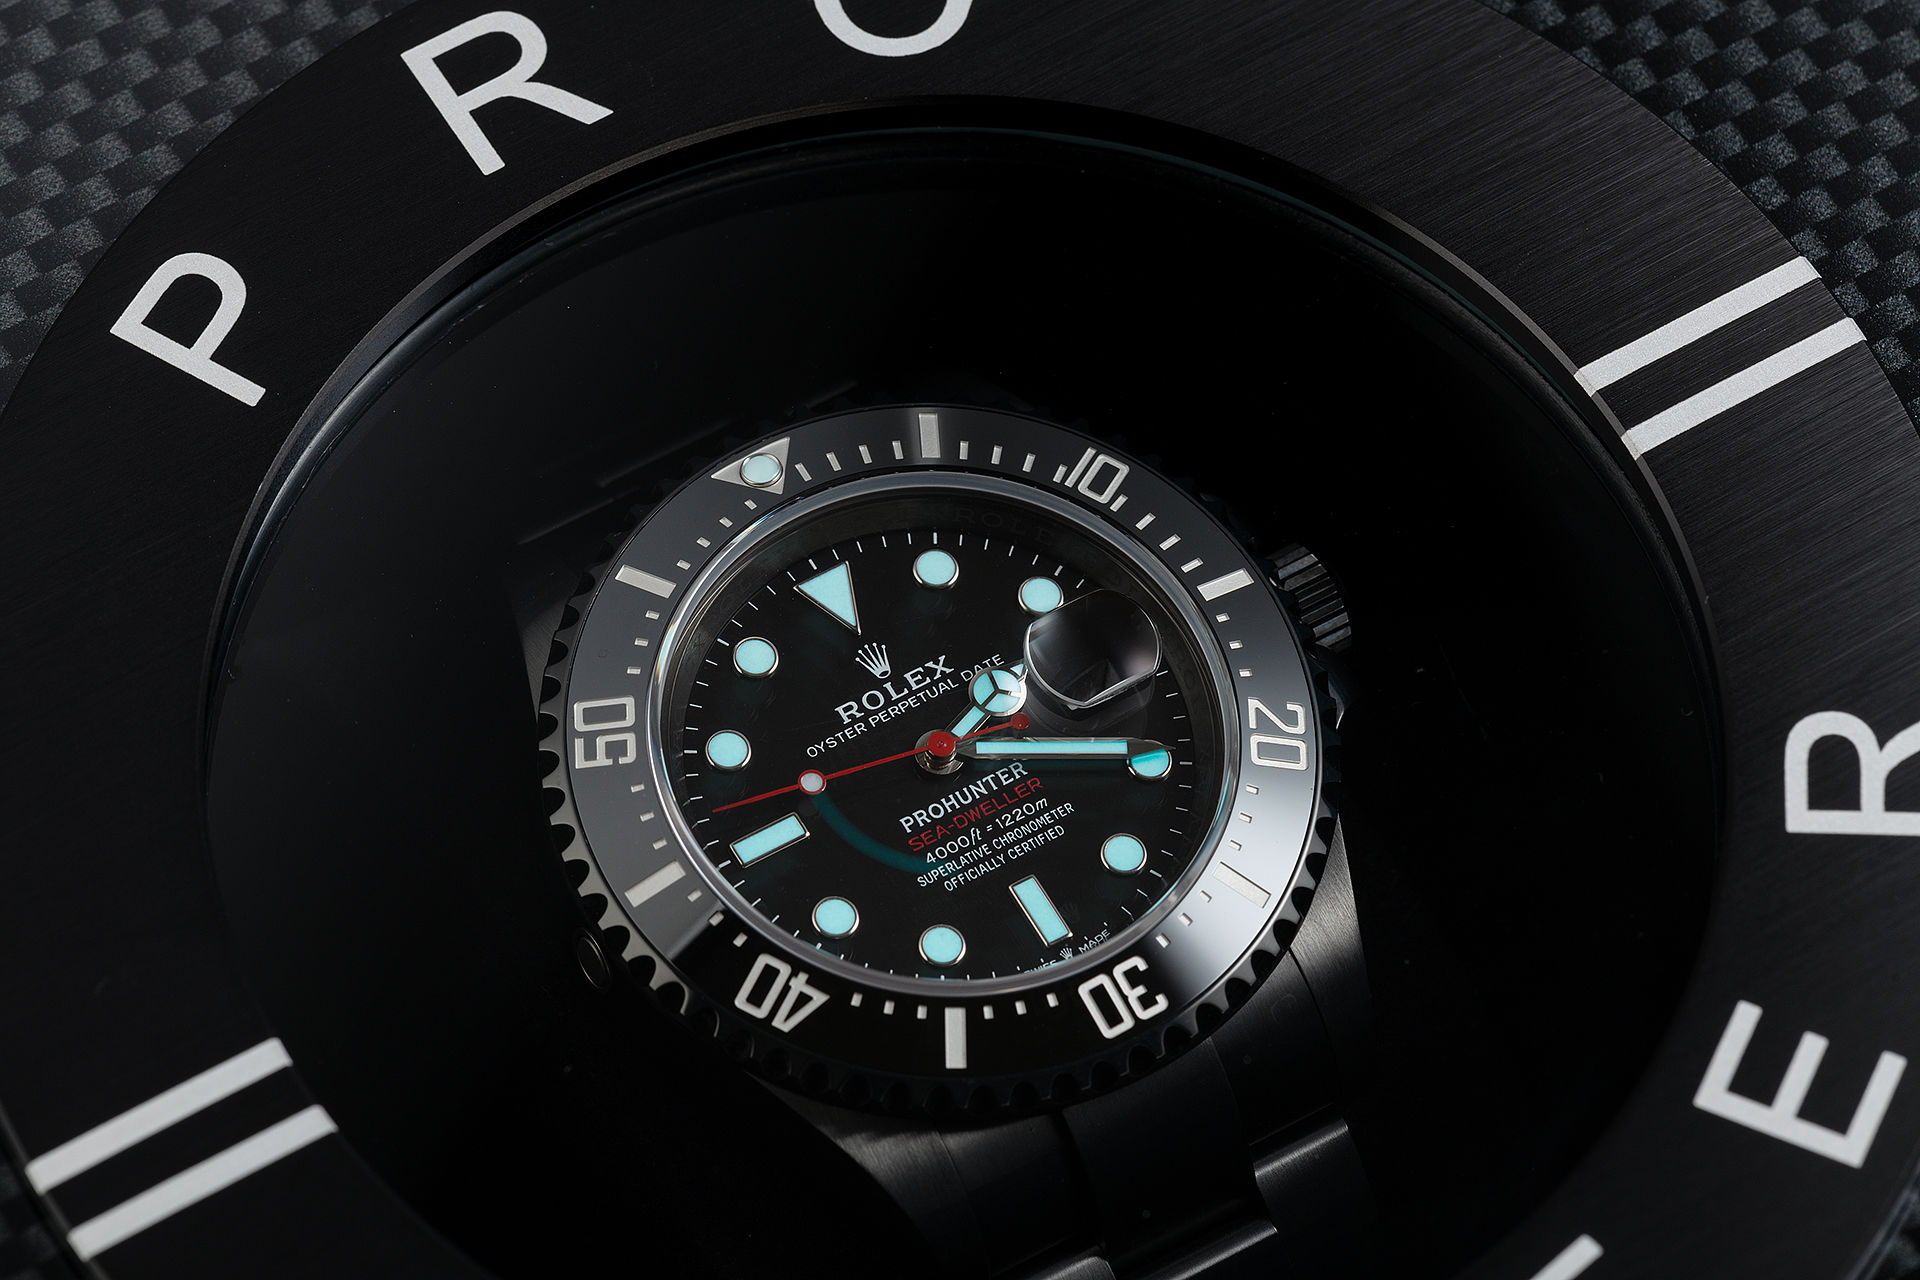 ref 126600 | New 'Red Writing' One of 100 | Pro Hunter Sea-Dweller